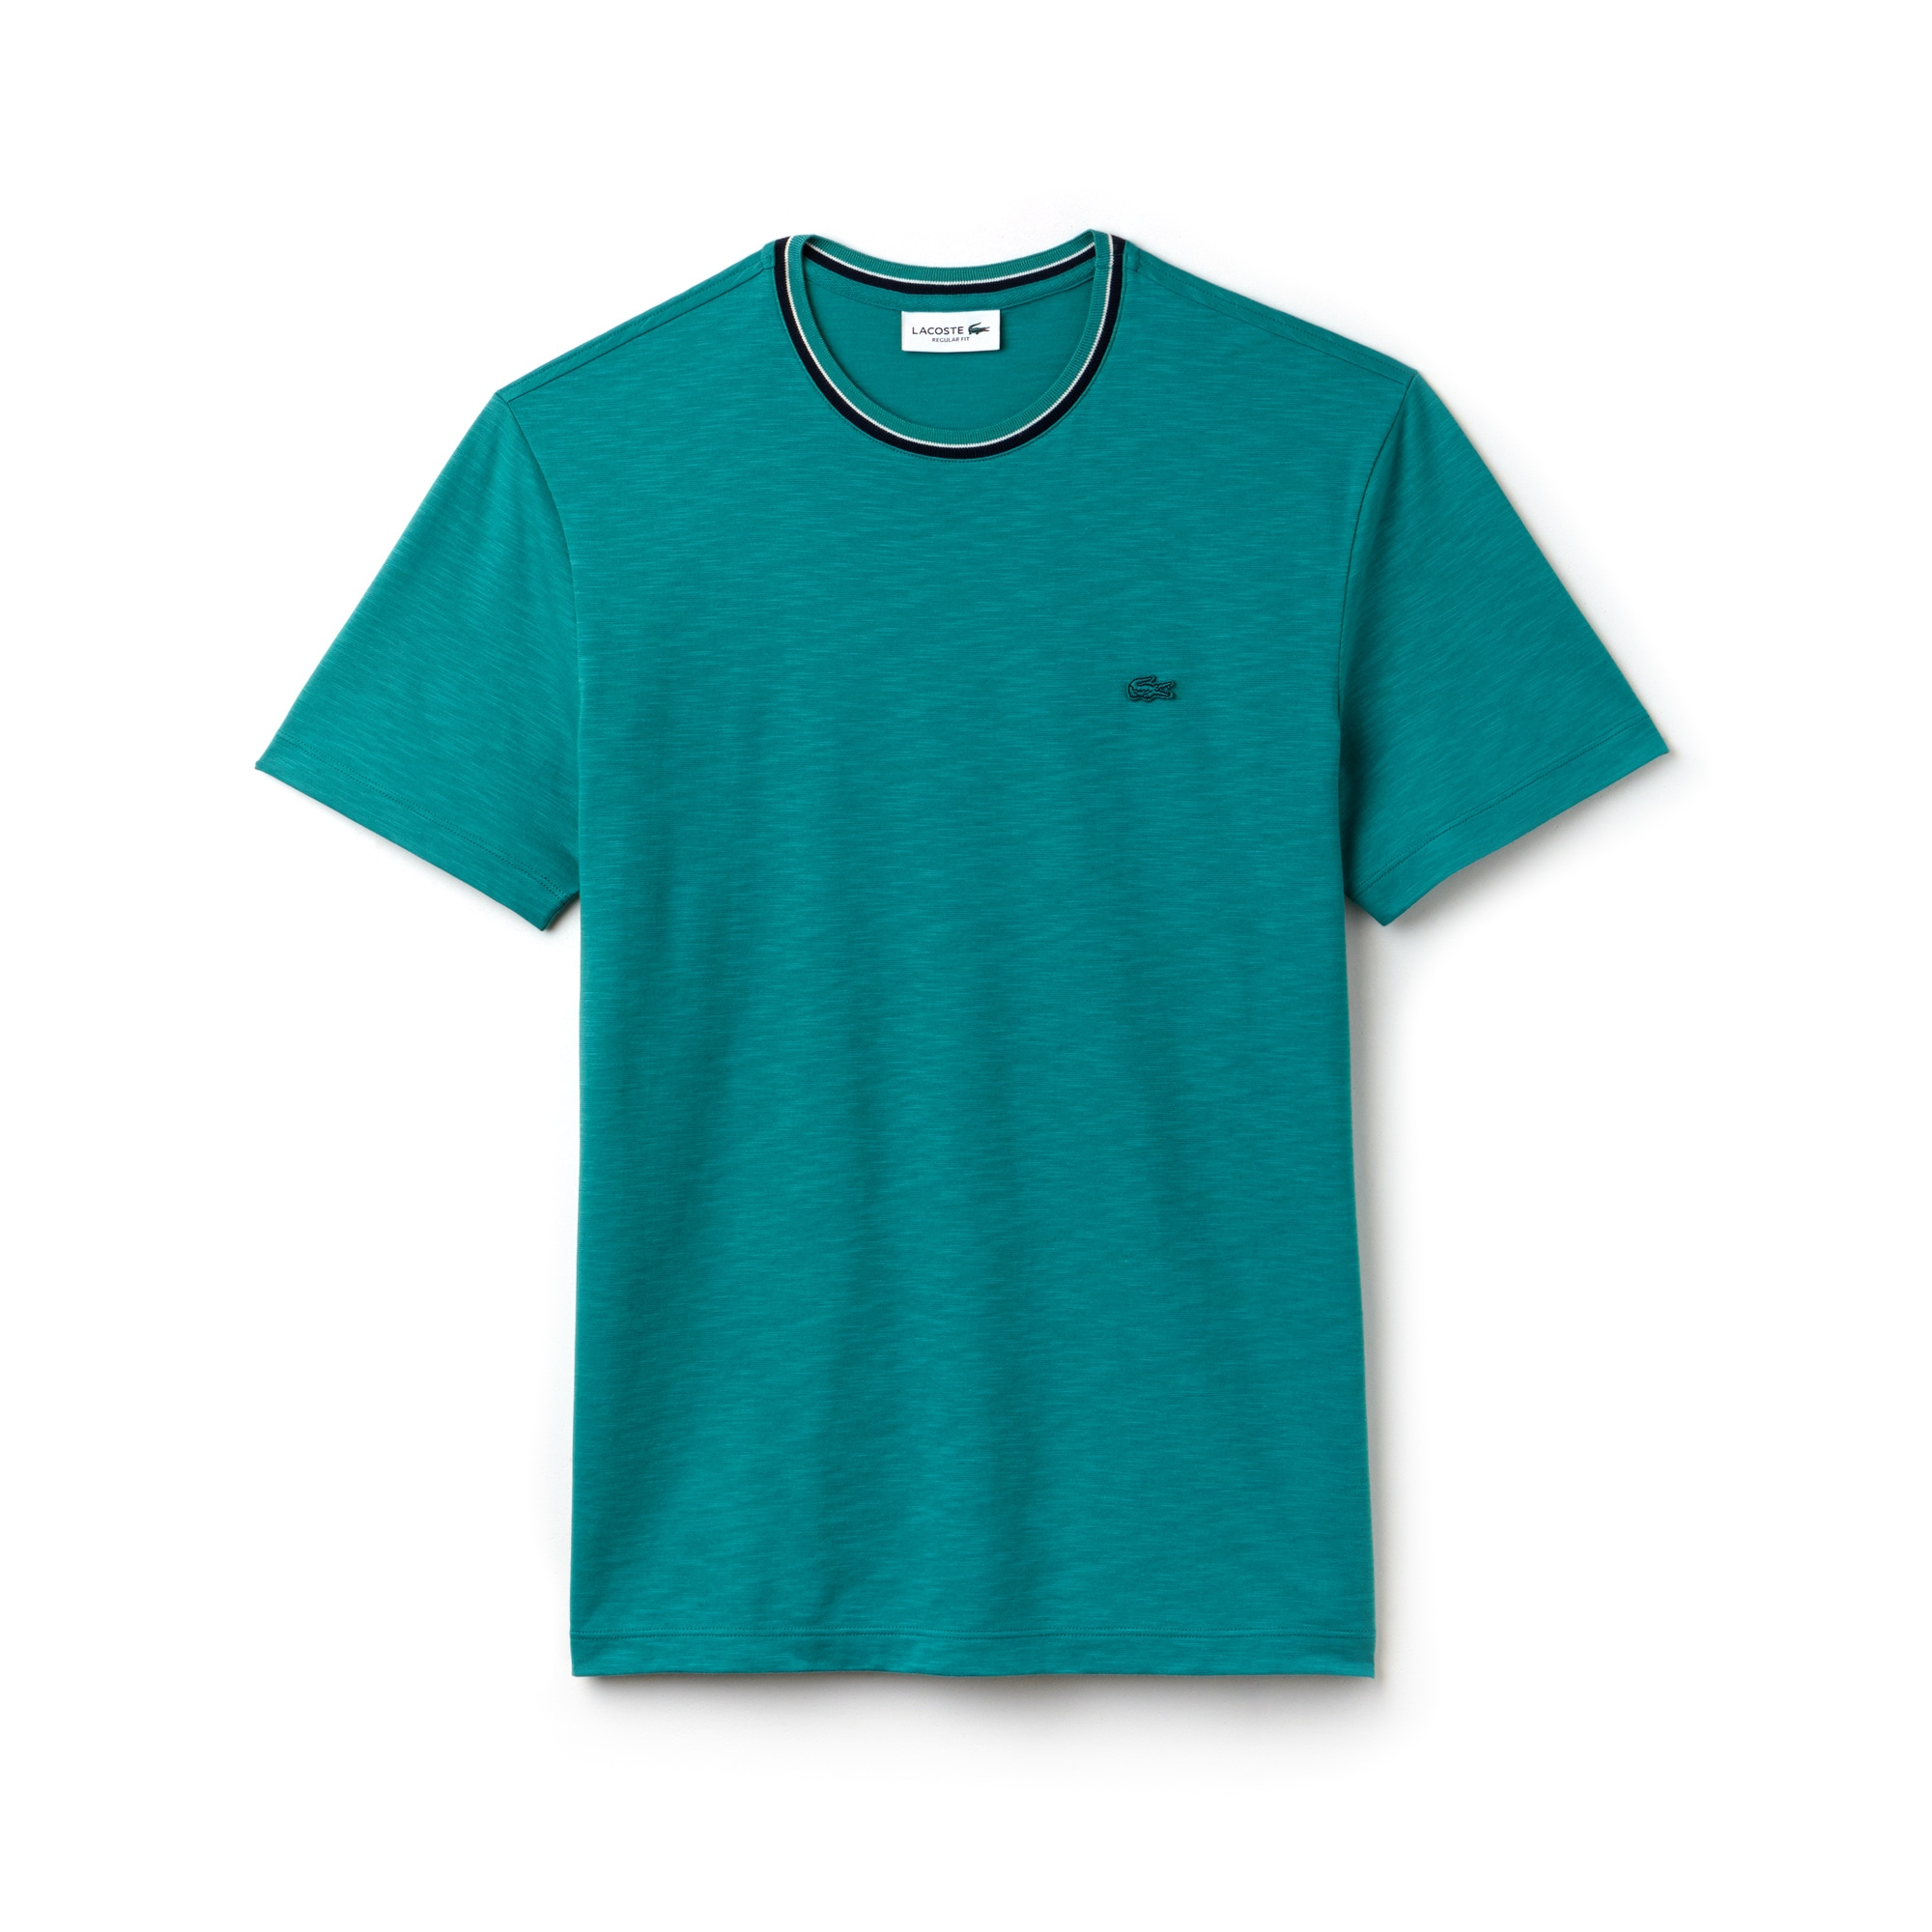 Men's Contrasting Crew Neck Flamme Cotton Jersey T-shirt